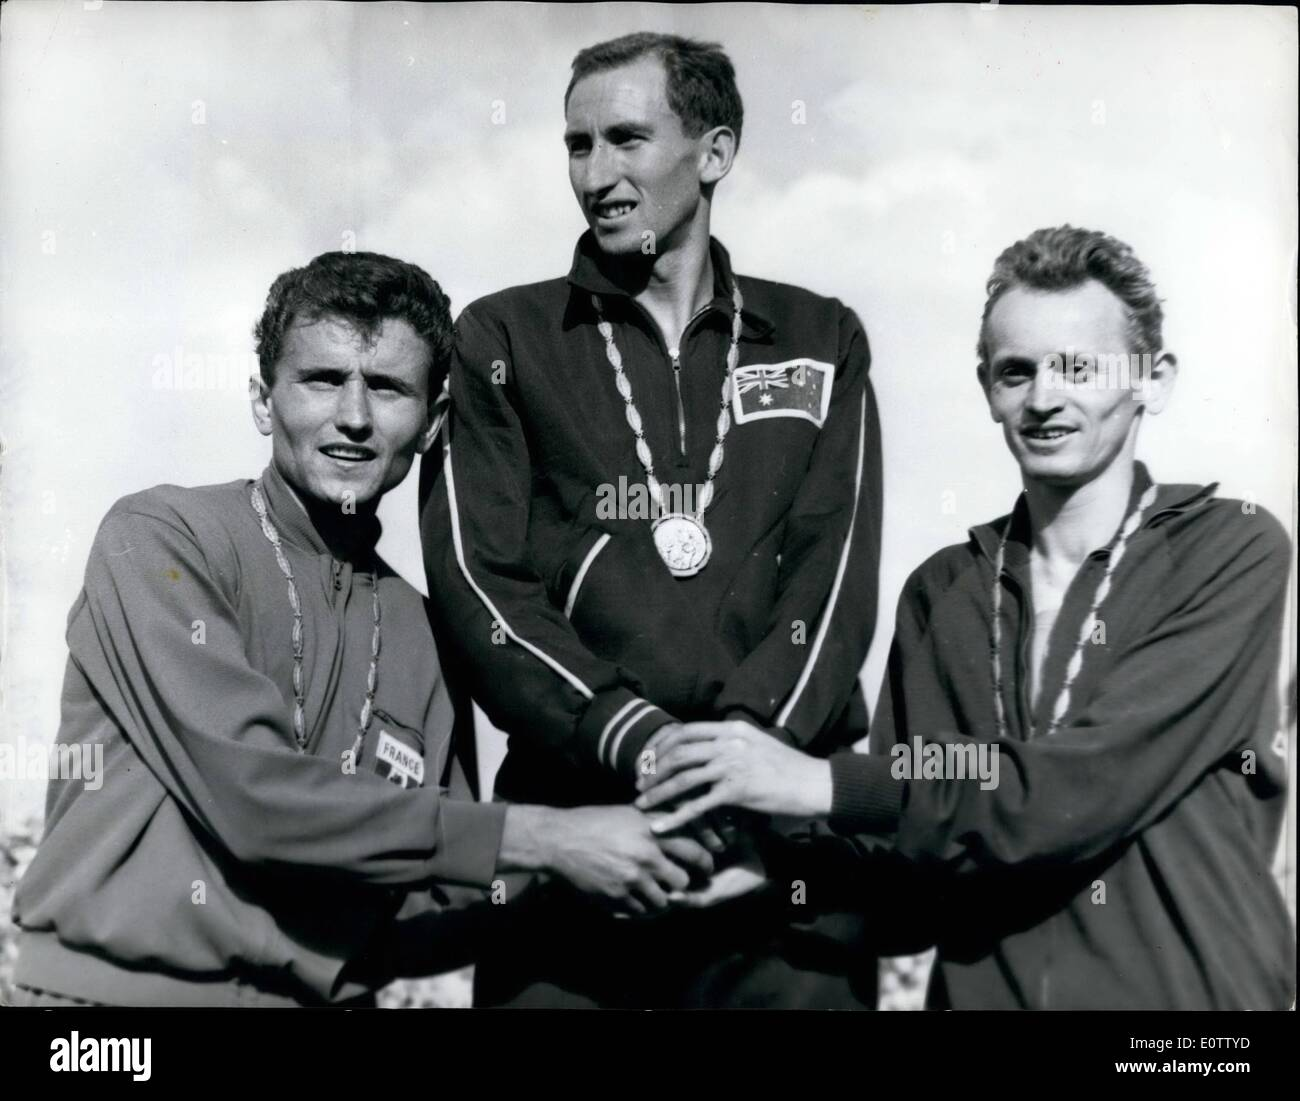 Sep. 09, 1960 - The 1960 Olympic Games in Rome - Herb Elliott zooms to victory and world Record in 1,500 metres: Herbert James Elliott, of Australia , became a super athlete in the Olympic Stadium in Rome yesterday when he won the 1,500 metres classic in the new world record time of 3 min. 35.5 secs. Bernard Jazy, of France, was second, and Hungarian Istbvan Rozsavolgyi third - Stock Image